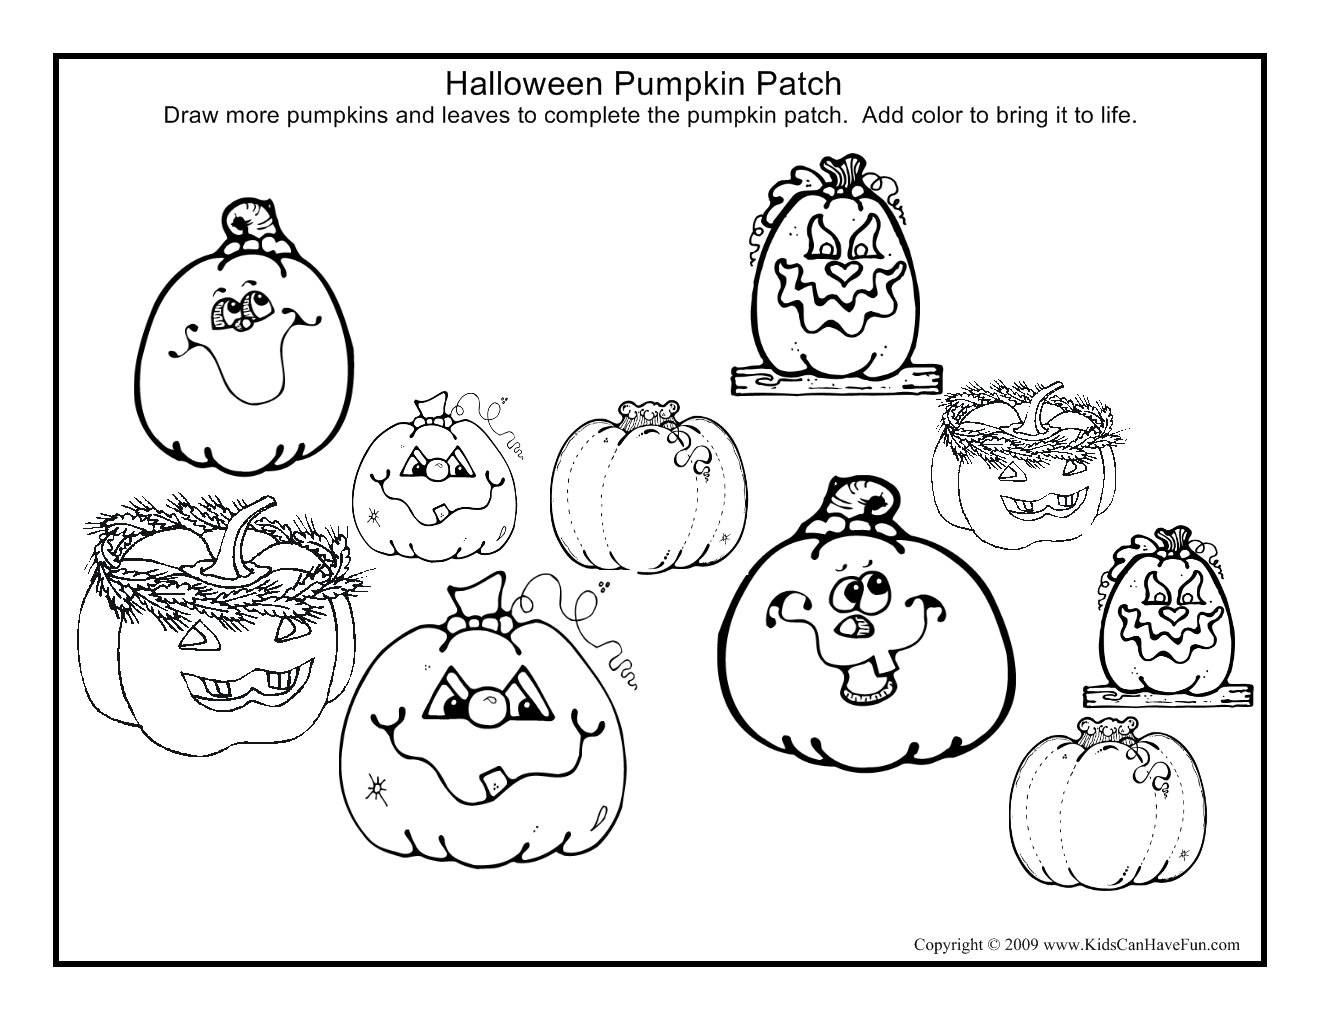 Pumpkin Patch Drawing Page